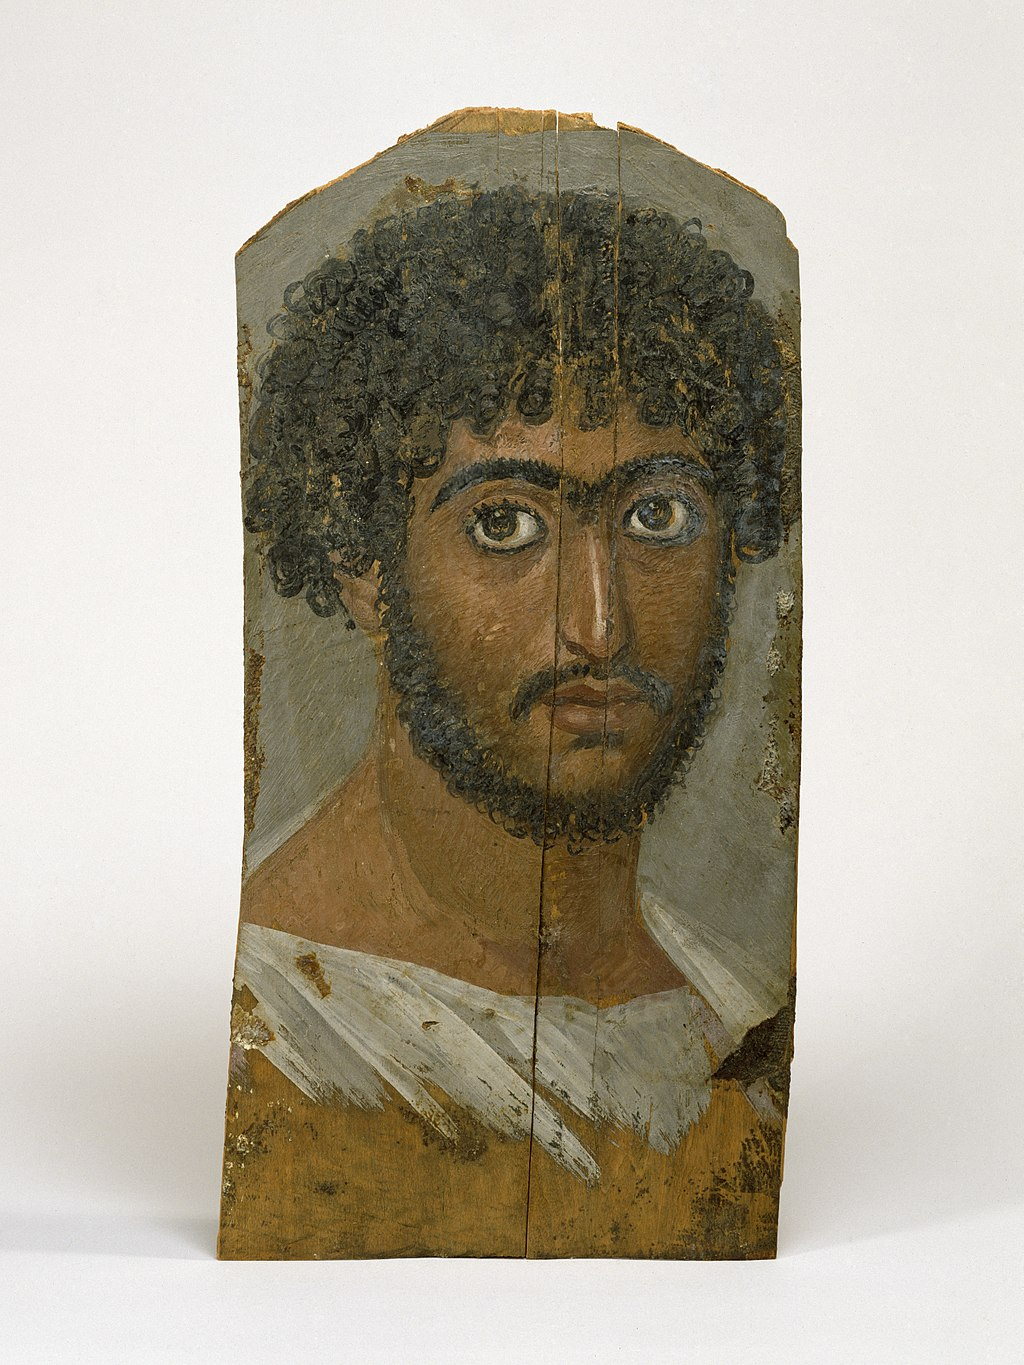 Egyptian - Mummy Portrait of a Bearded Man - Walters Art Museum